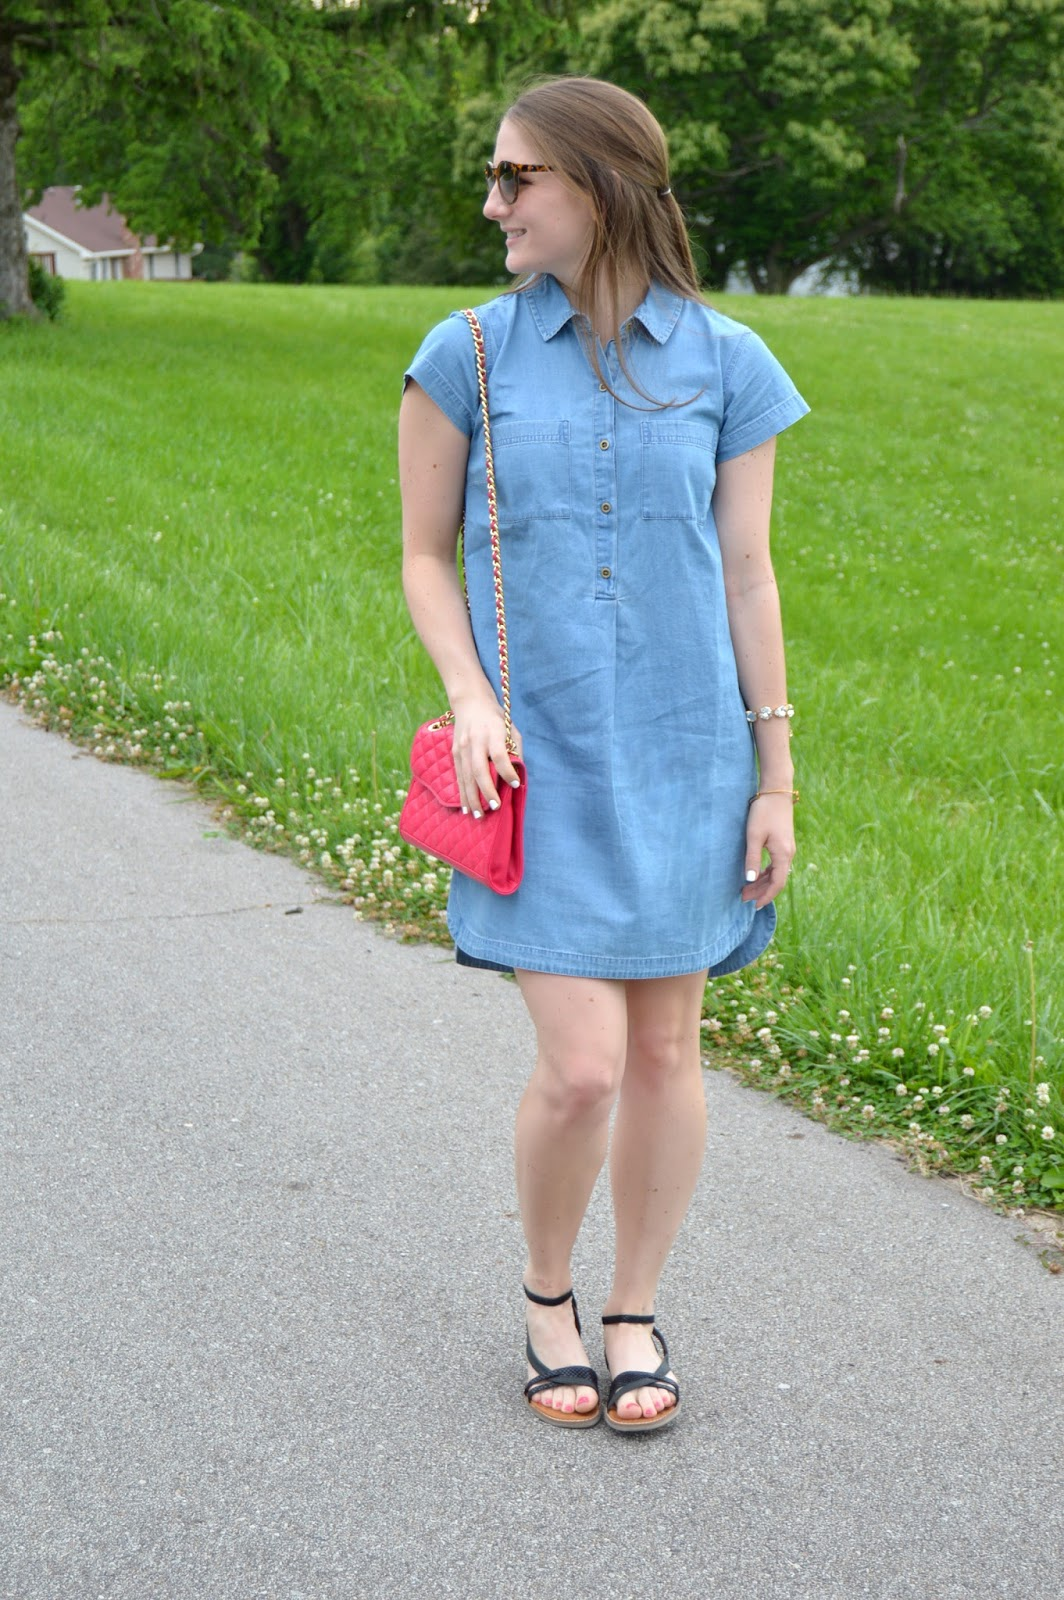 chambray shirt dress | light wash chambray shirt dress | how to style a chambray shirt dress | what to wear with a chambray shirt dress | how to rock the chambray trend | a memory of us  | summer style | summer outfit ideas